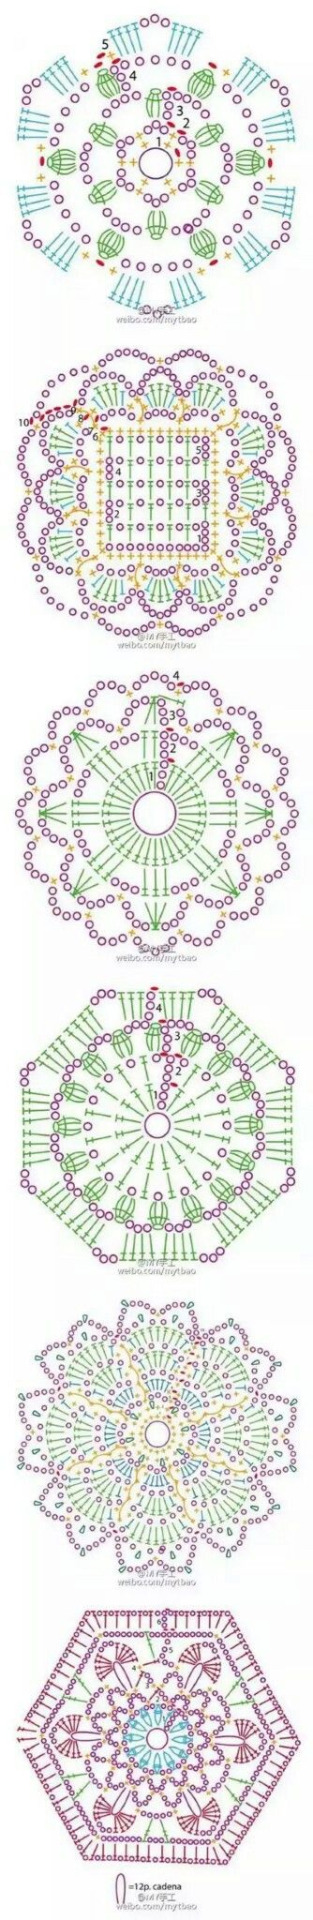 Crochet Granny Charts Source: saved from duitang.com | tejidos ...